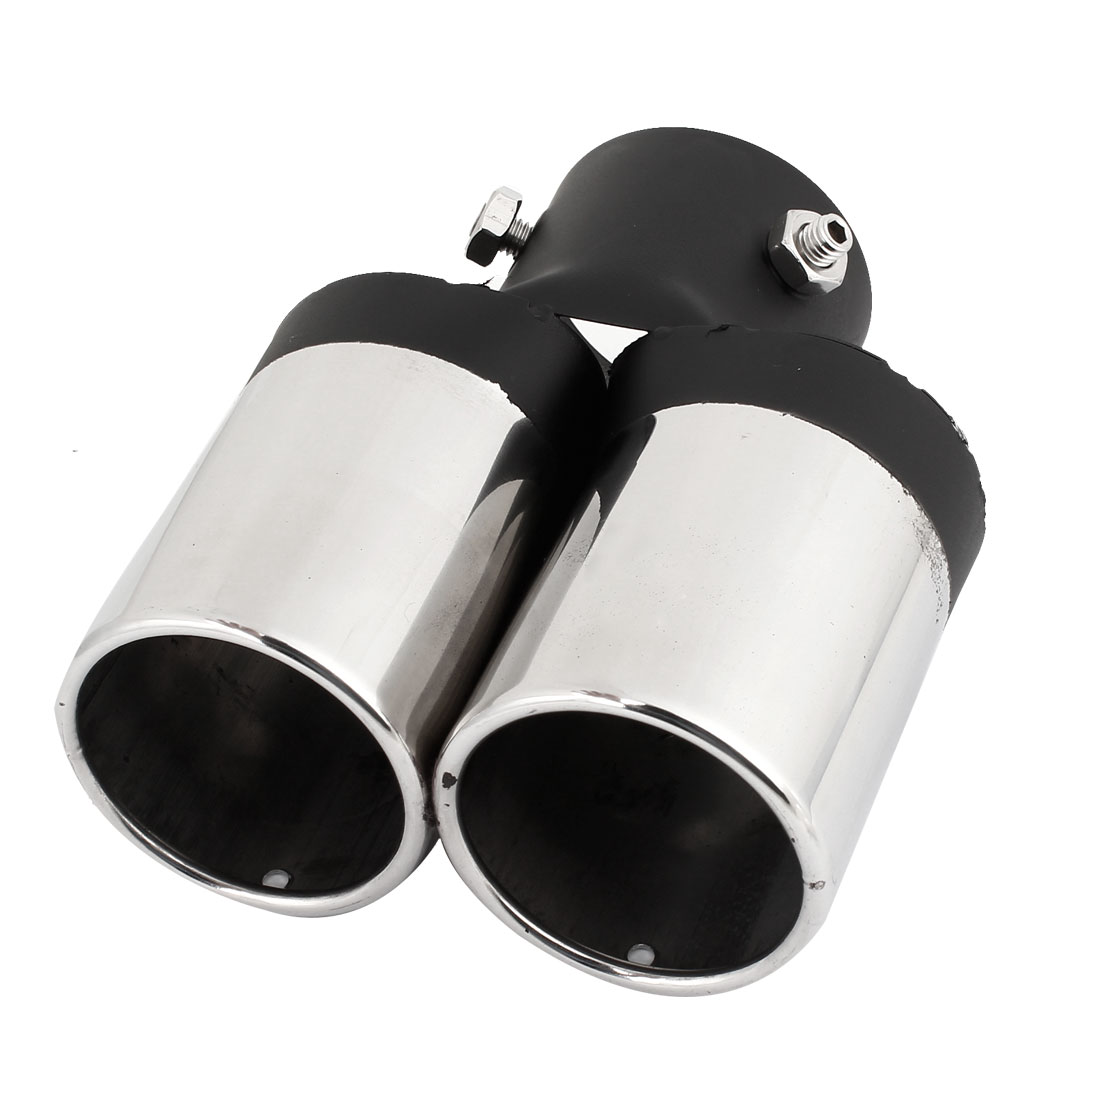 Car 55mm Dia Dual Outlet Rolled Exhaust Muffler Tip Pipe Silver Tone Black